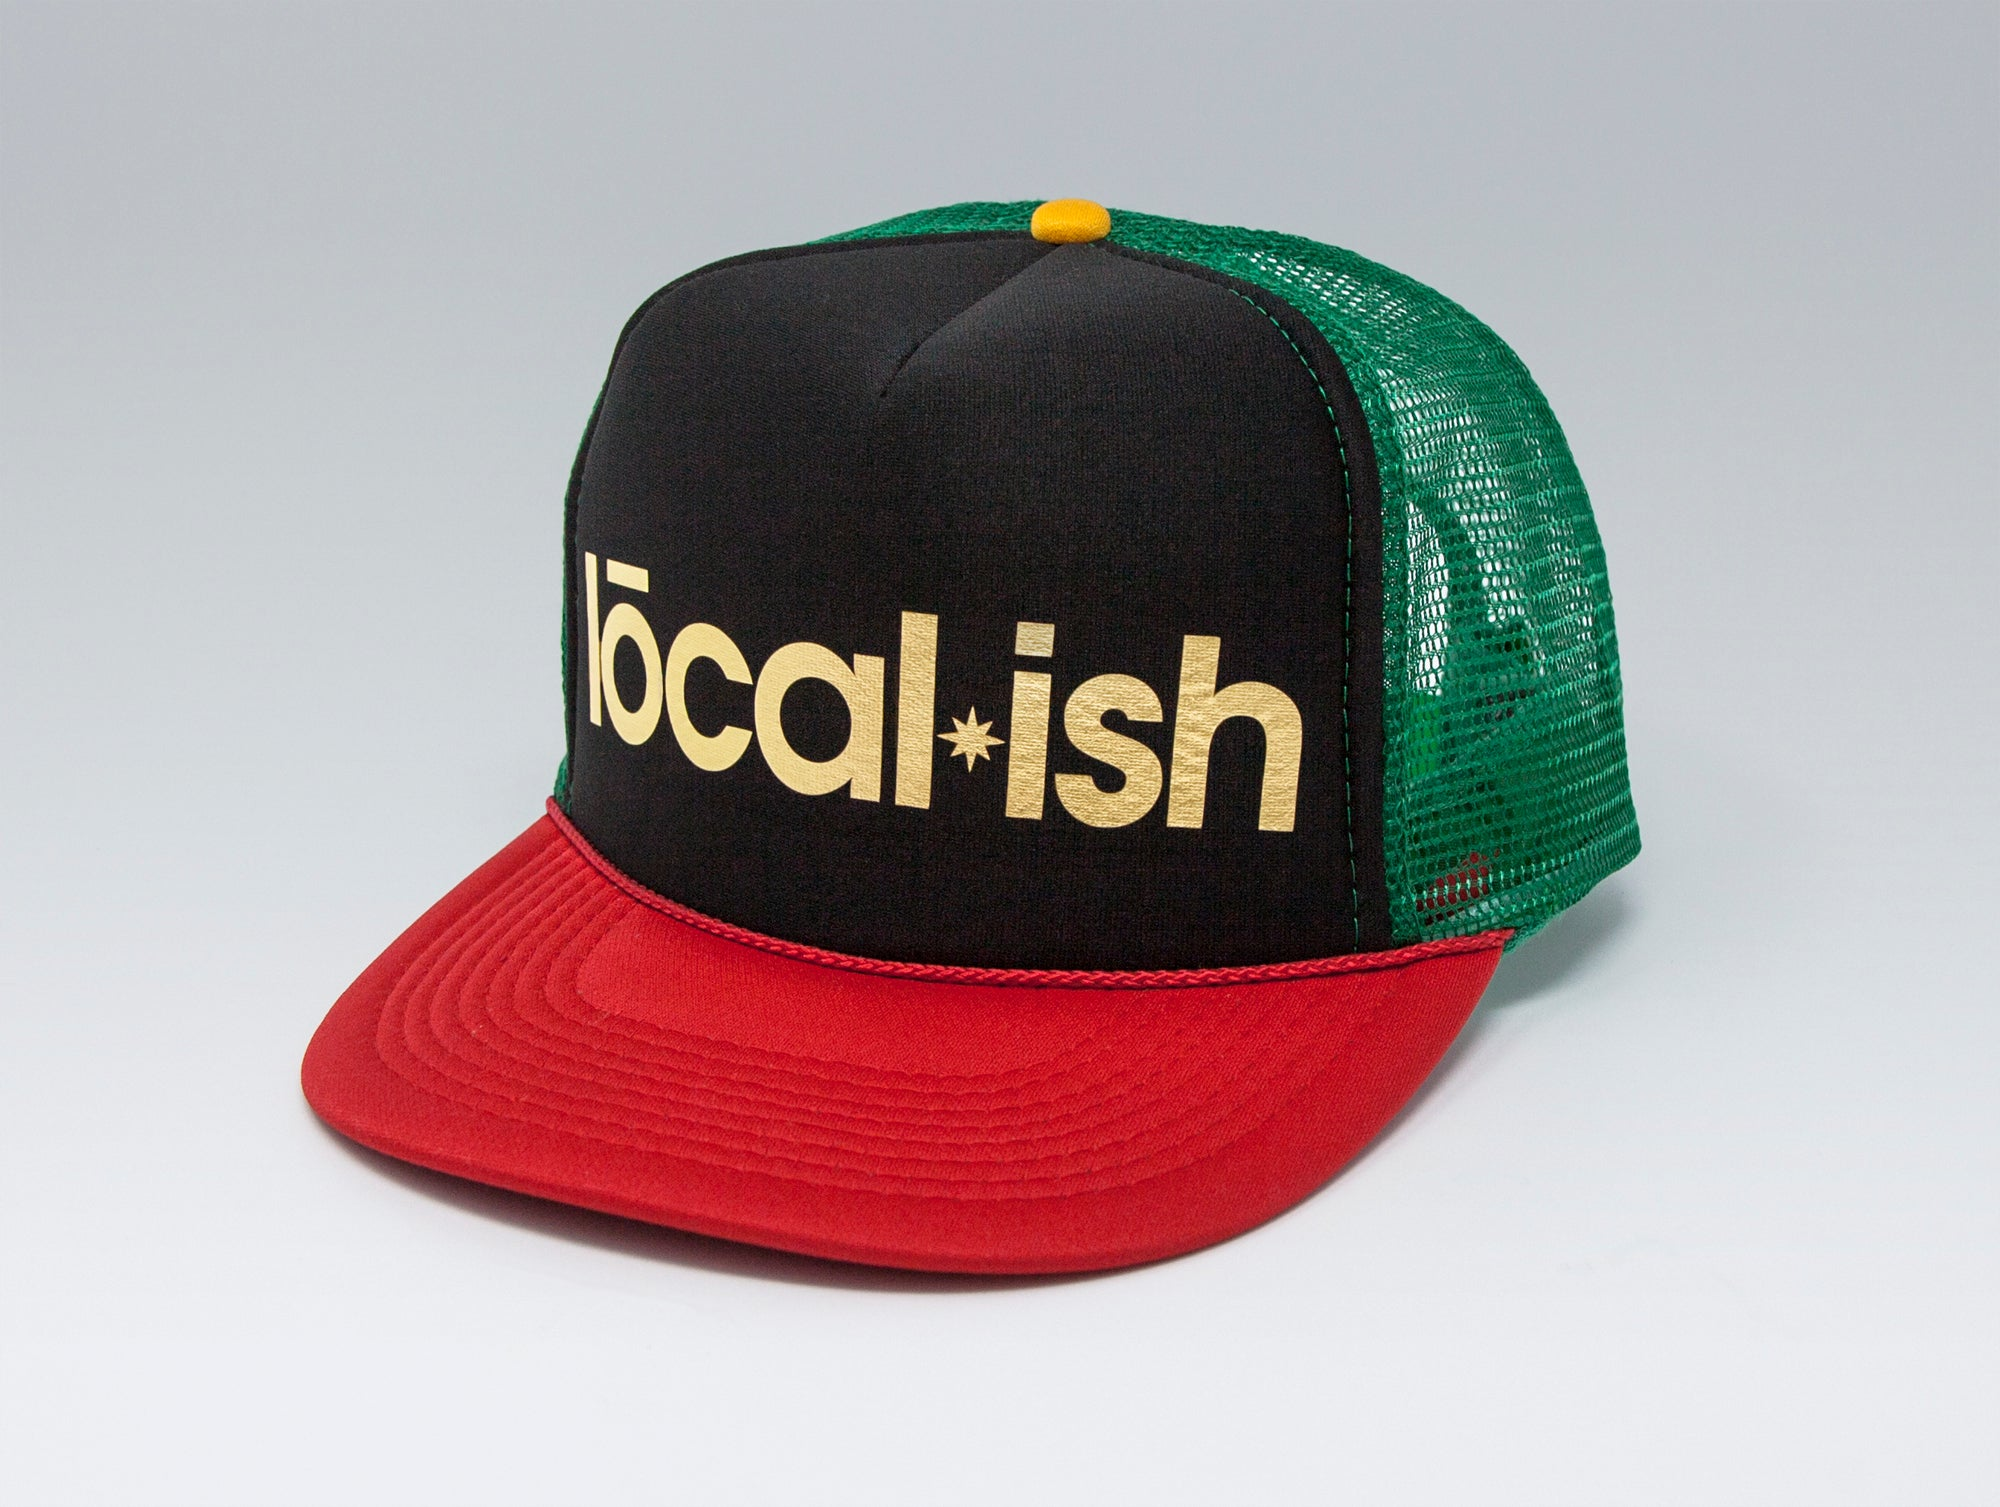 Localish Foil Printed Trucker Hat - Rasta - right